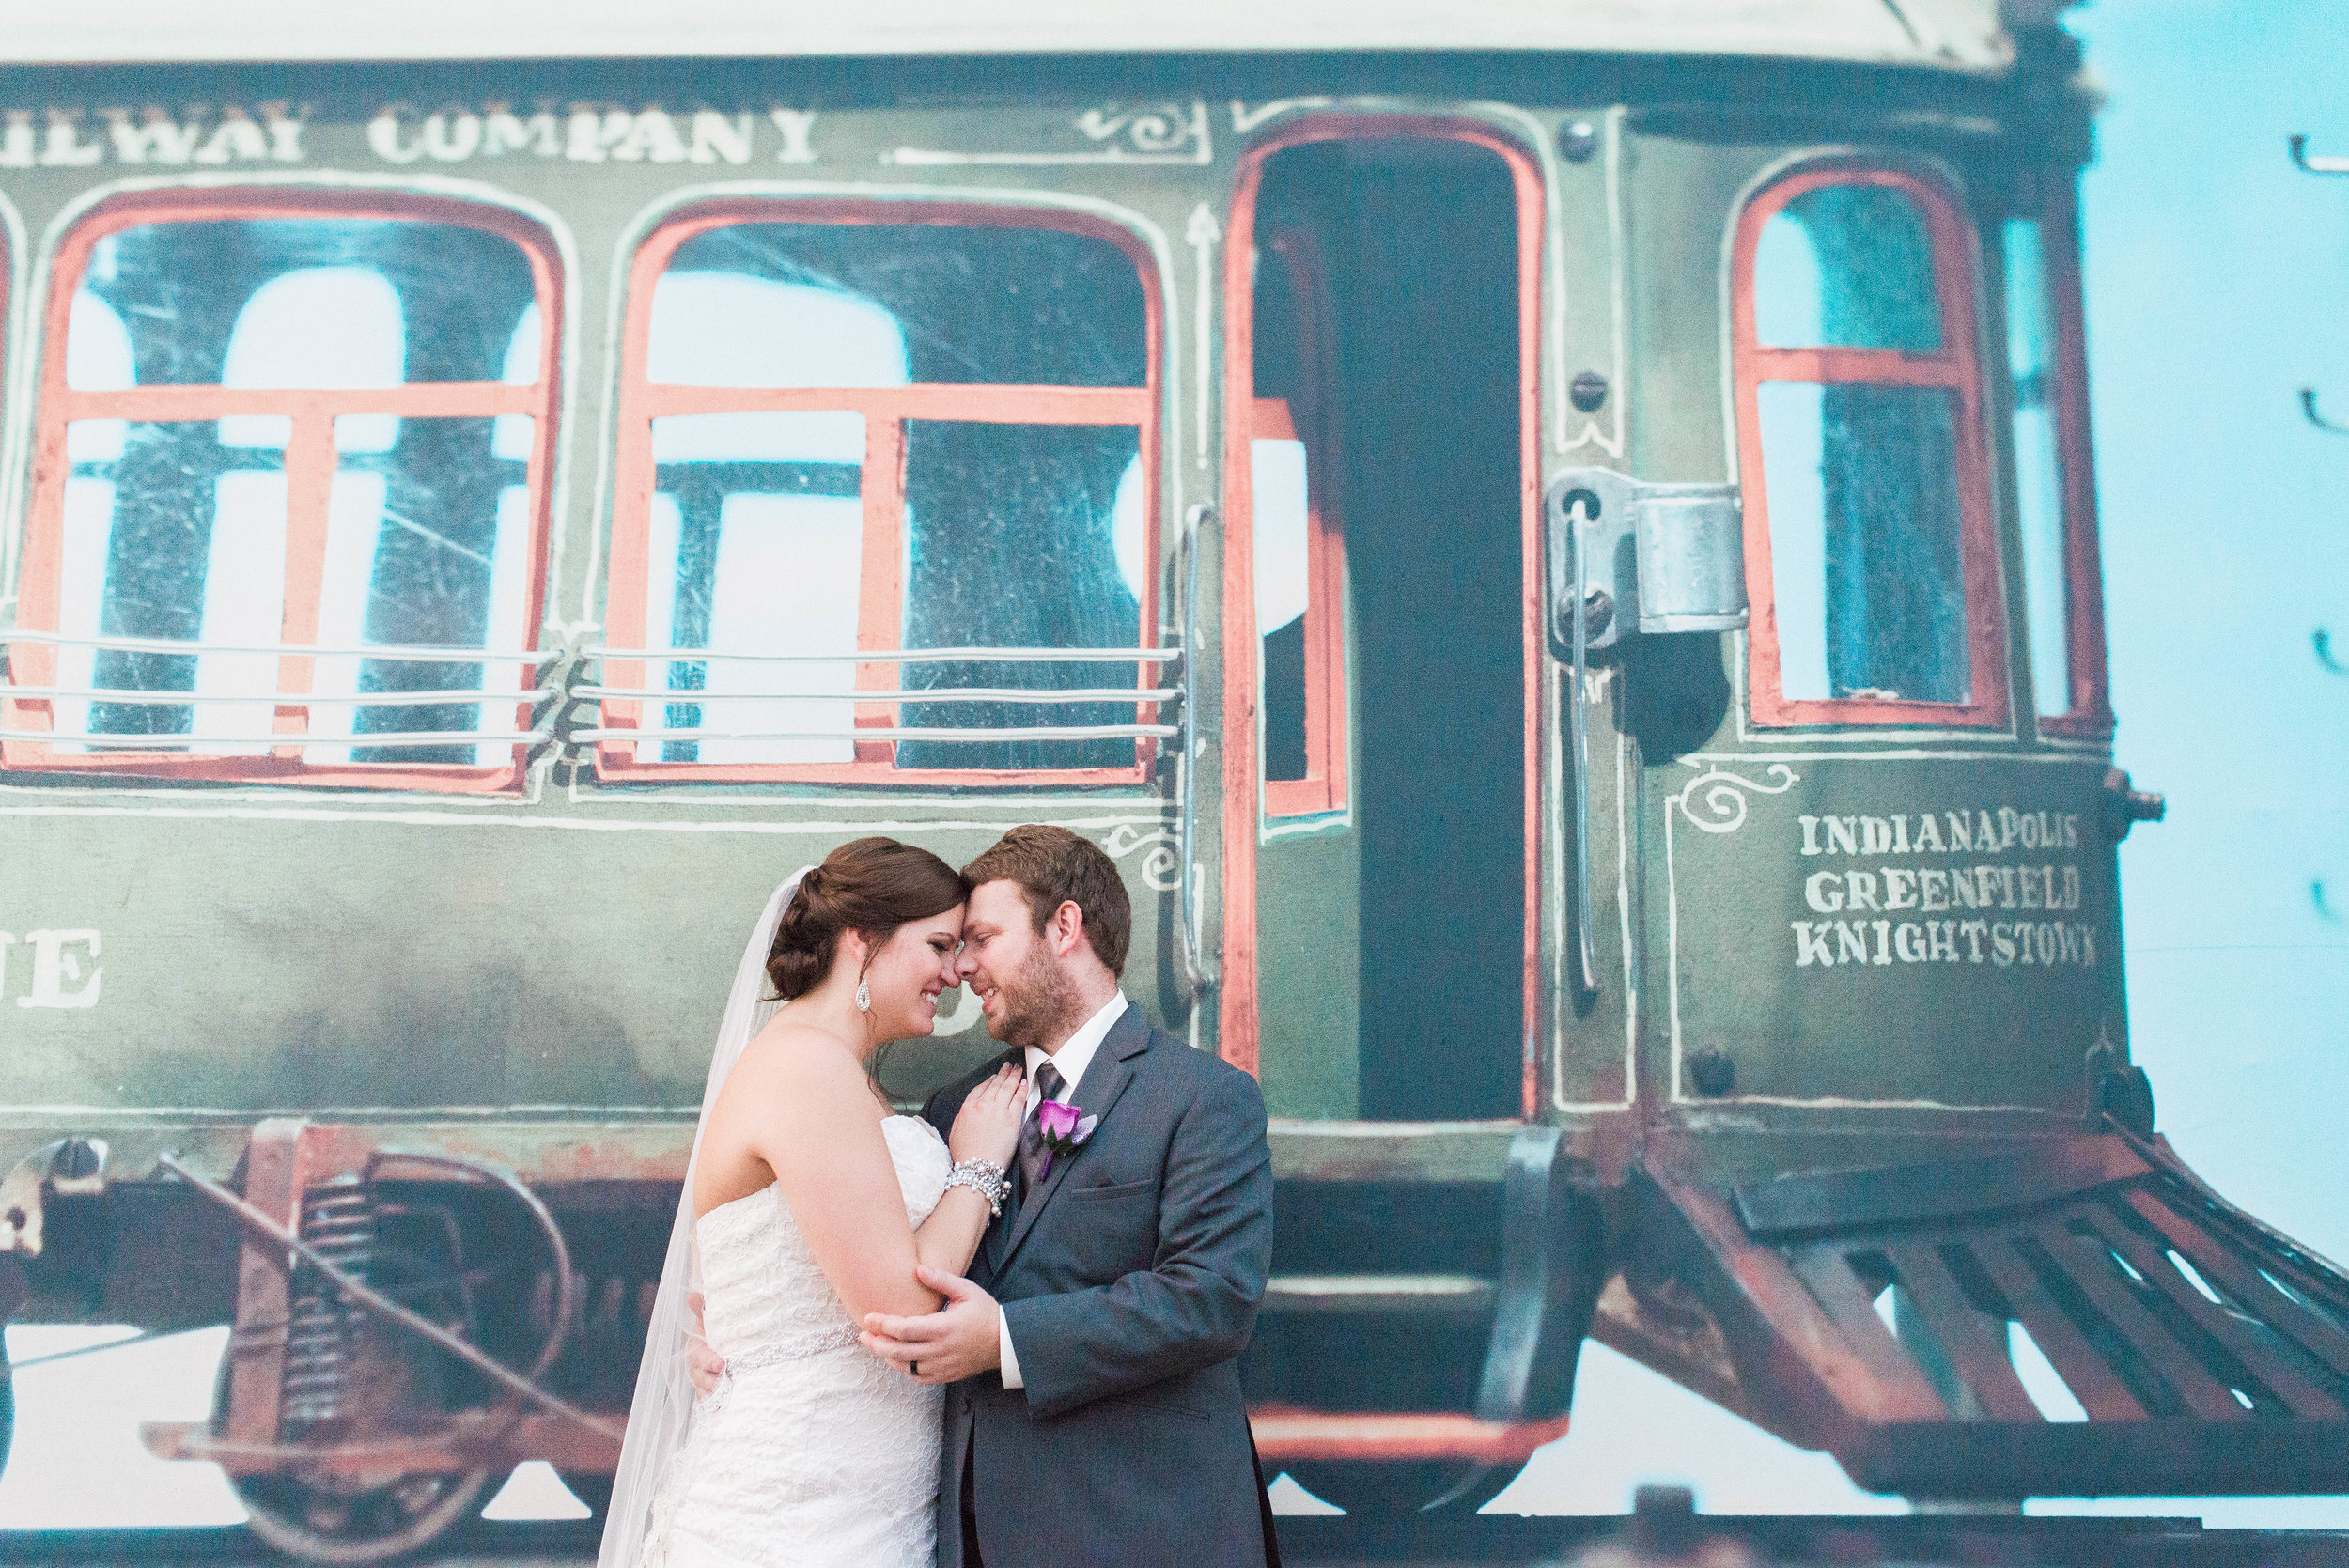 ALICIA - Katerina & Michael are awesome! They were so great to work with, and we got some amazing pictures of our big day! They know all of the best shots to get. We are so happy we used them as our wedding photographers!WEDDING